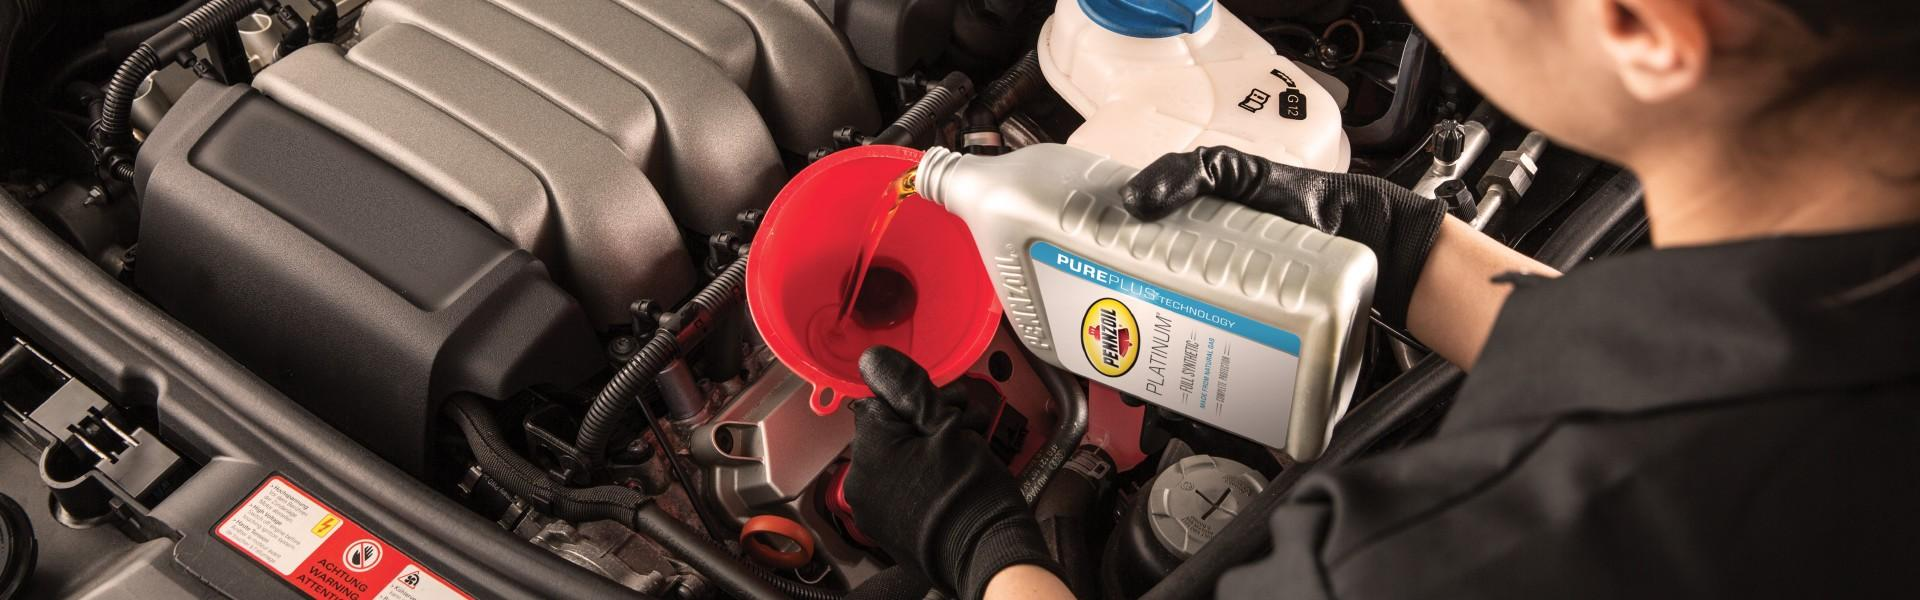 Jiffy Lube Oil Change >> When Should You Change Your Oil Jiffy Lube